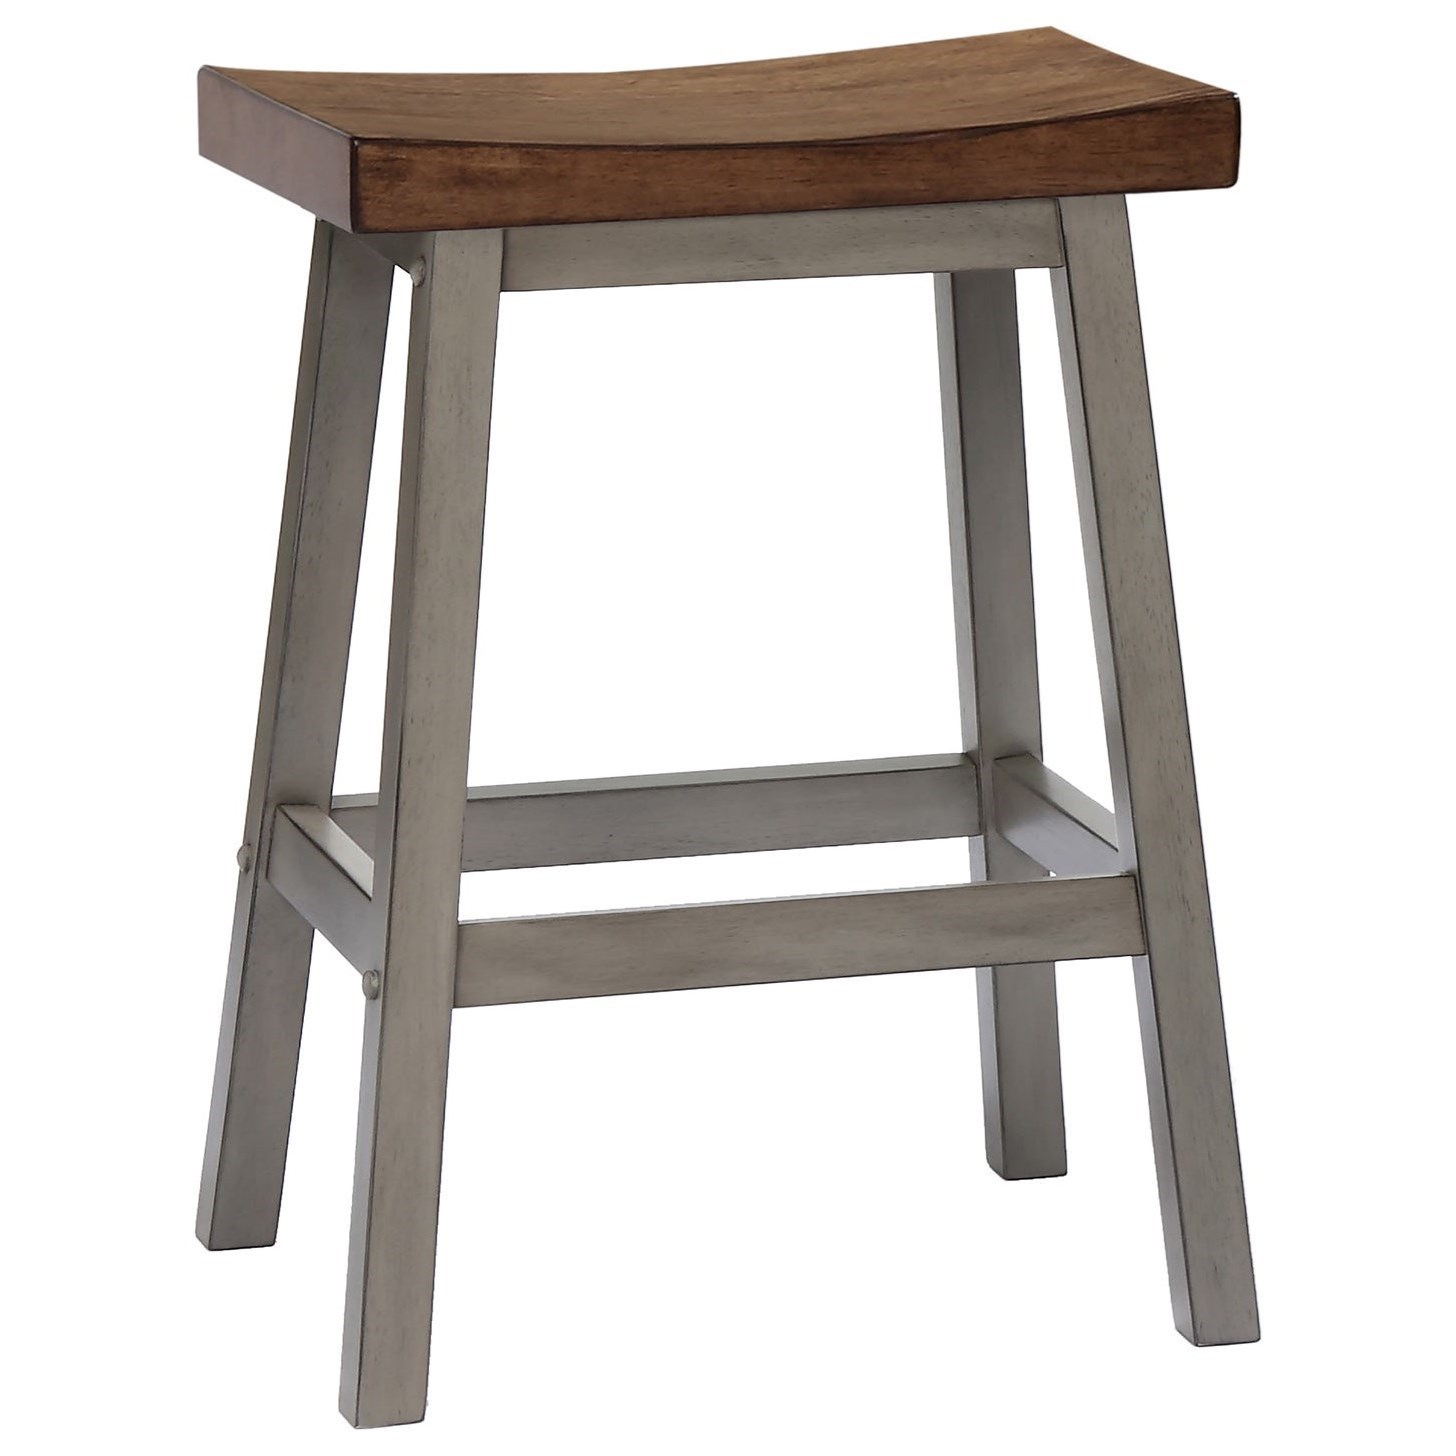 Barnwell Saddle Stool by Winners Only at Crowley Furniture & Mattress